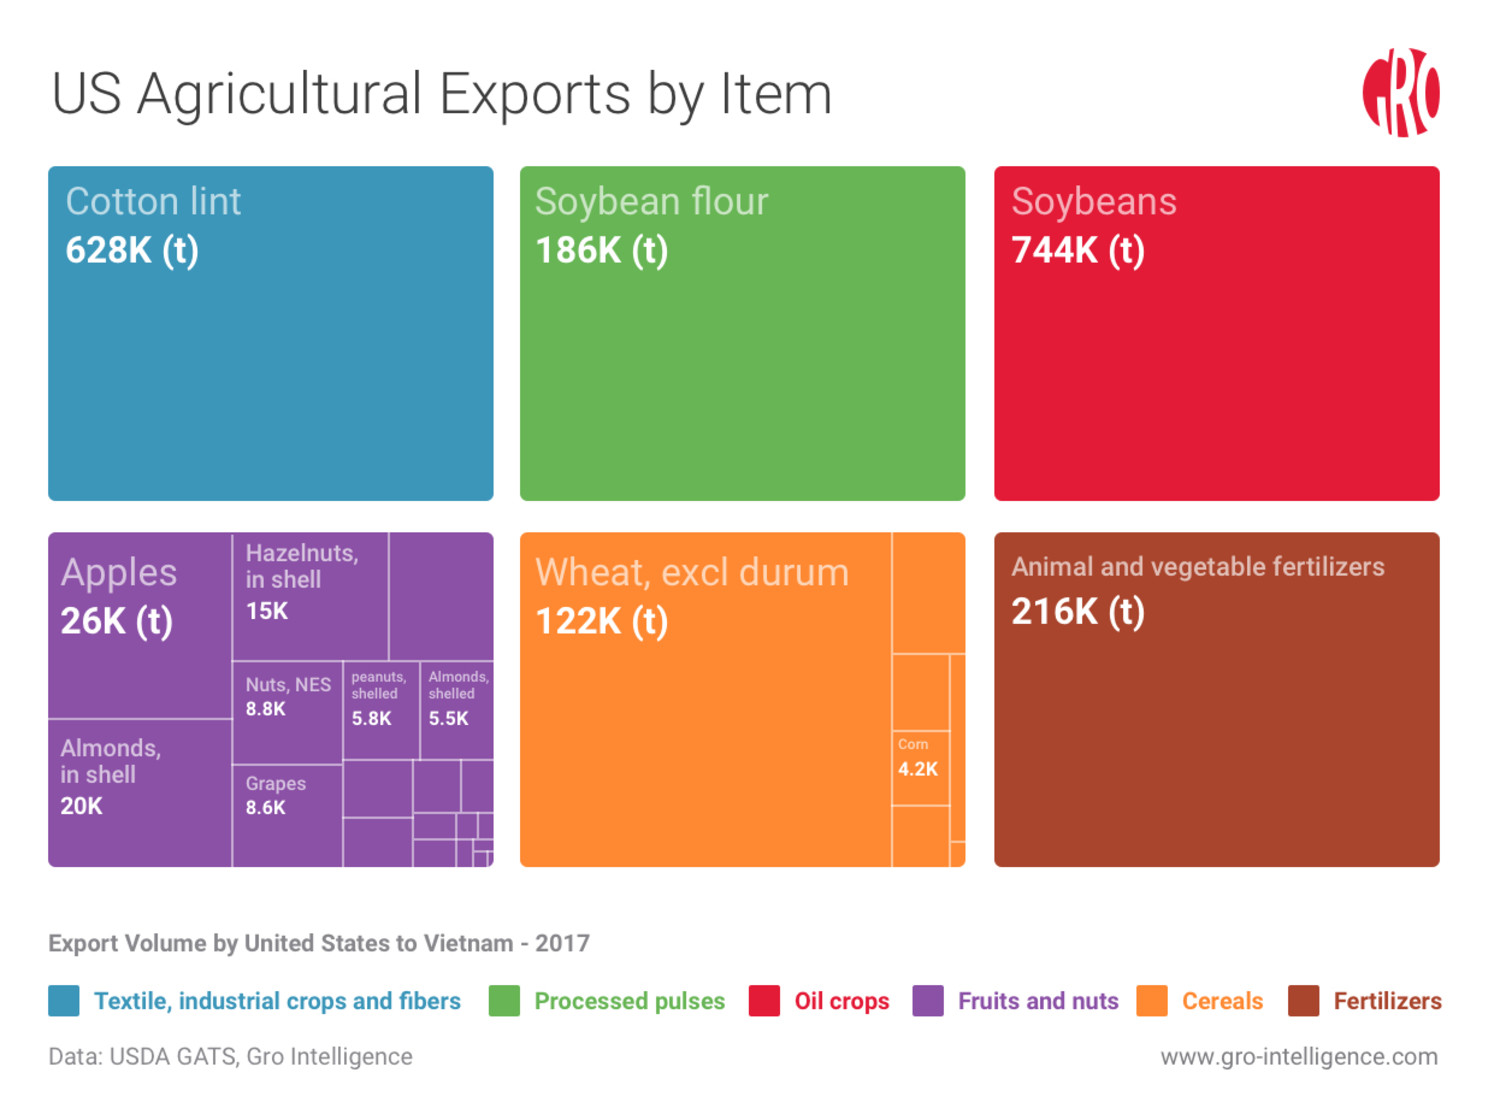 US Agriculture Exports to Vietnam by item